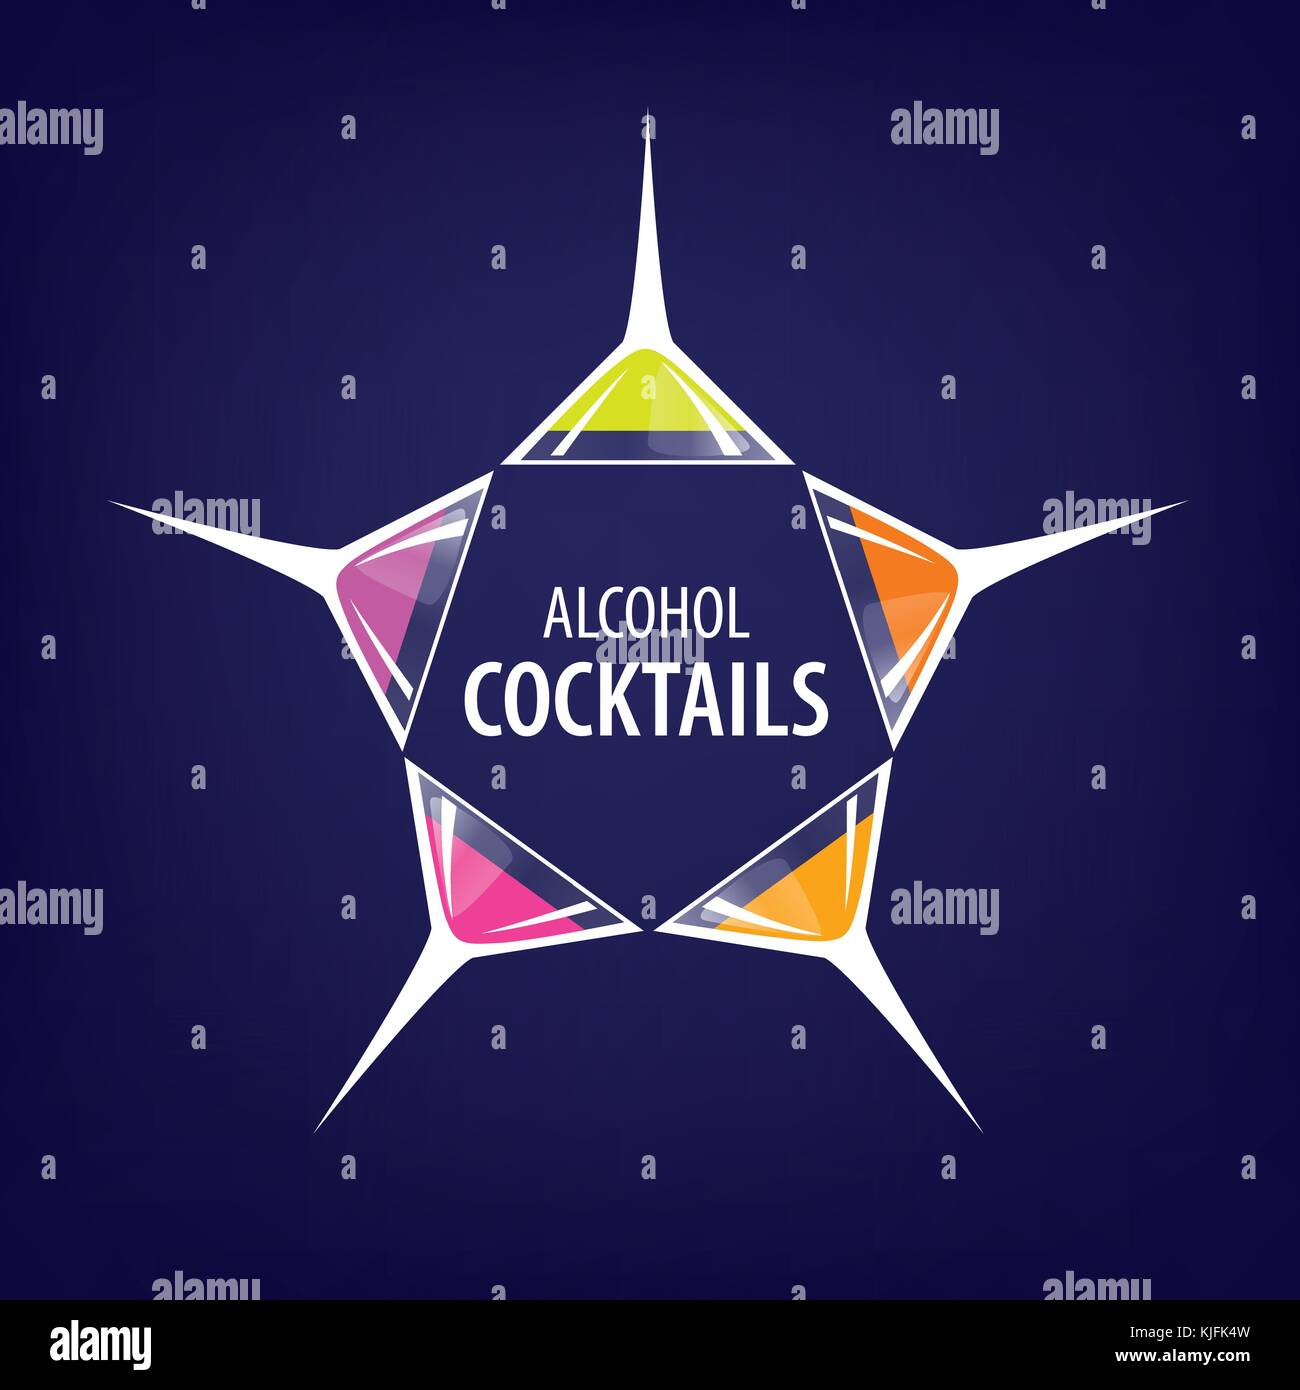 alcoholic cocktails logo Stock Vector